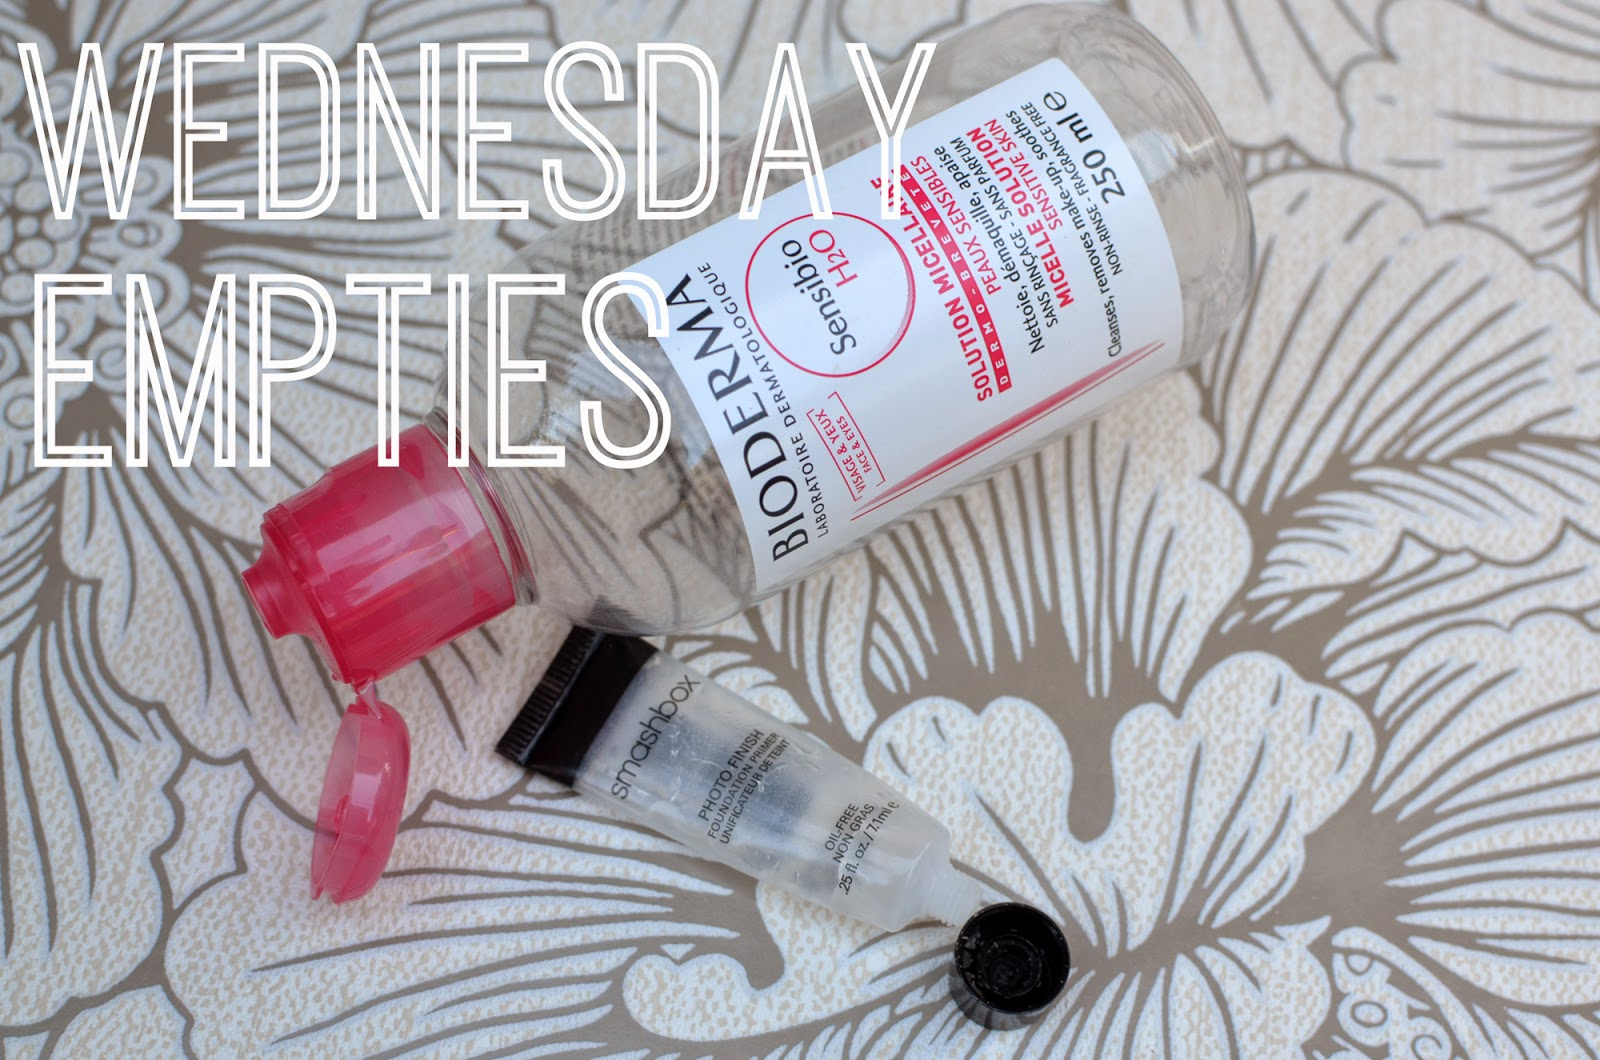 This week's empties: Bioderma Sensibio H20 and Smashbox Photo Finish primer